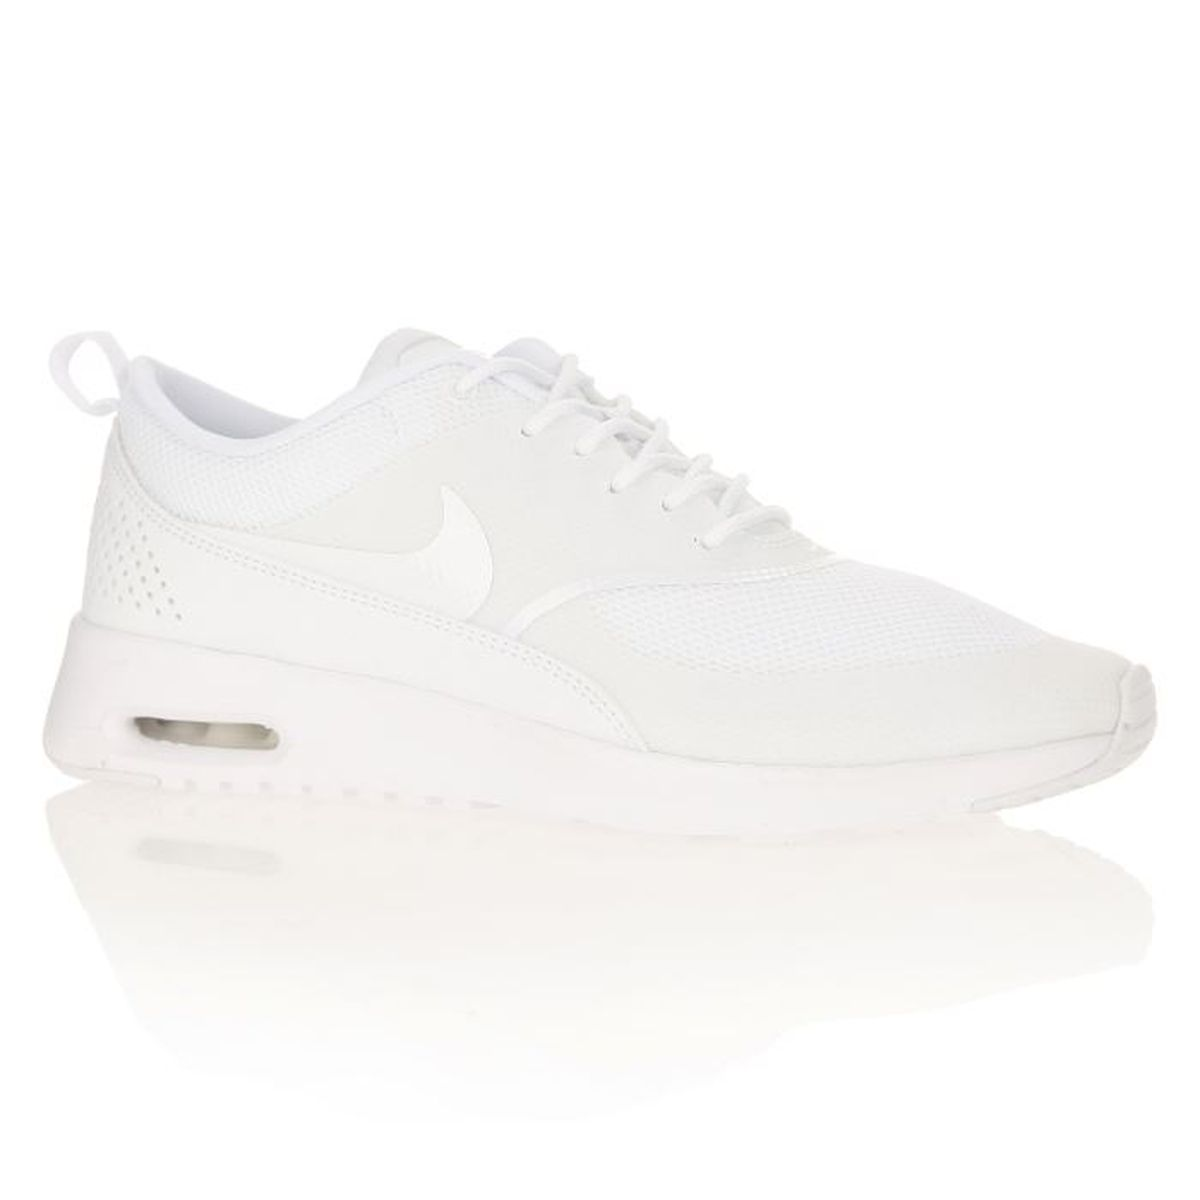 nike baskets air max thea femme femme blanc achat vente nike baskets femme femme pas cher. Black Bedroom Furniture Sets. Home Design Ideas